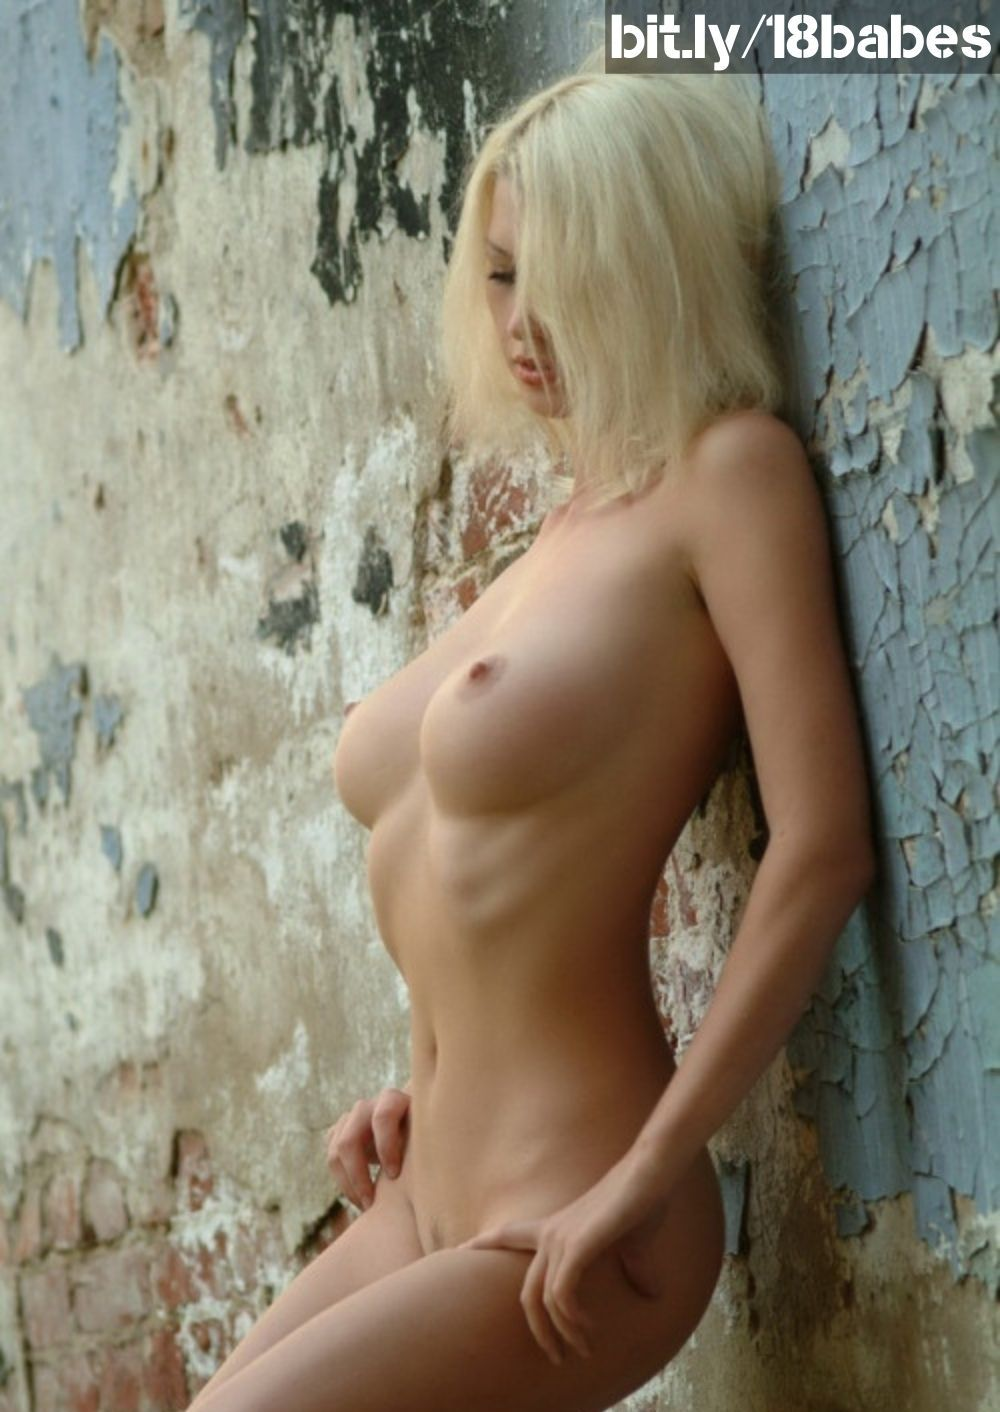 tweenies girls swallow adult porn video new porn pictures nigro chat live sexy n